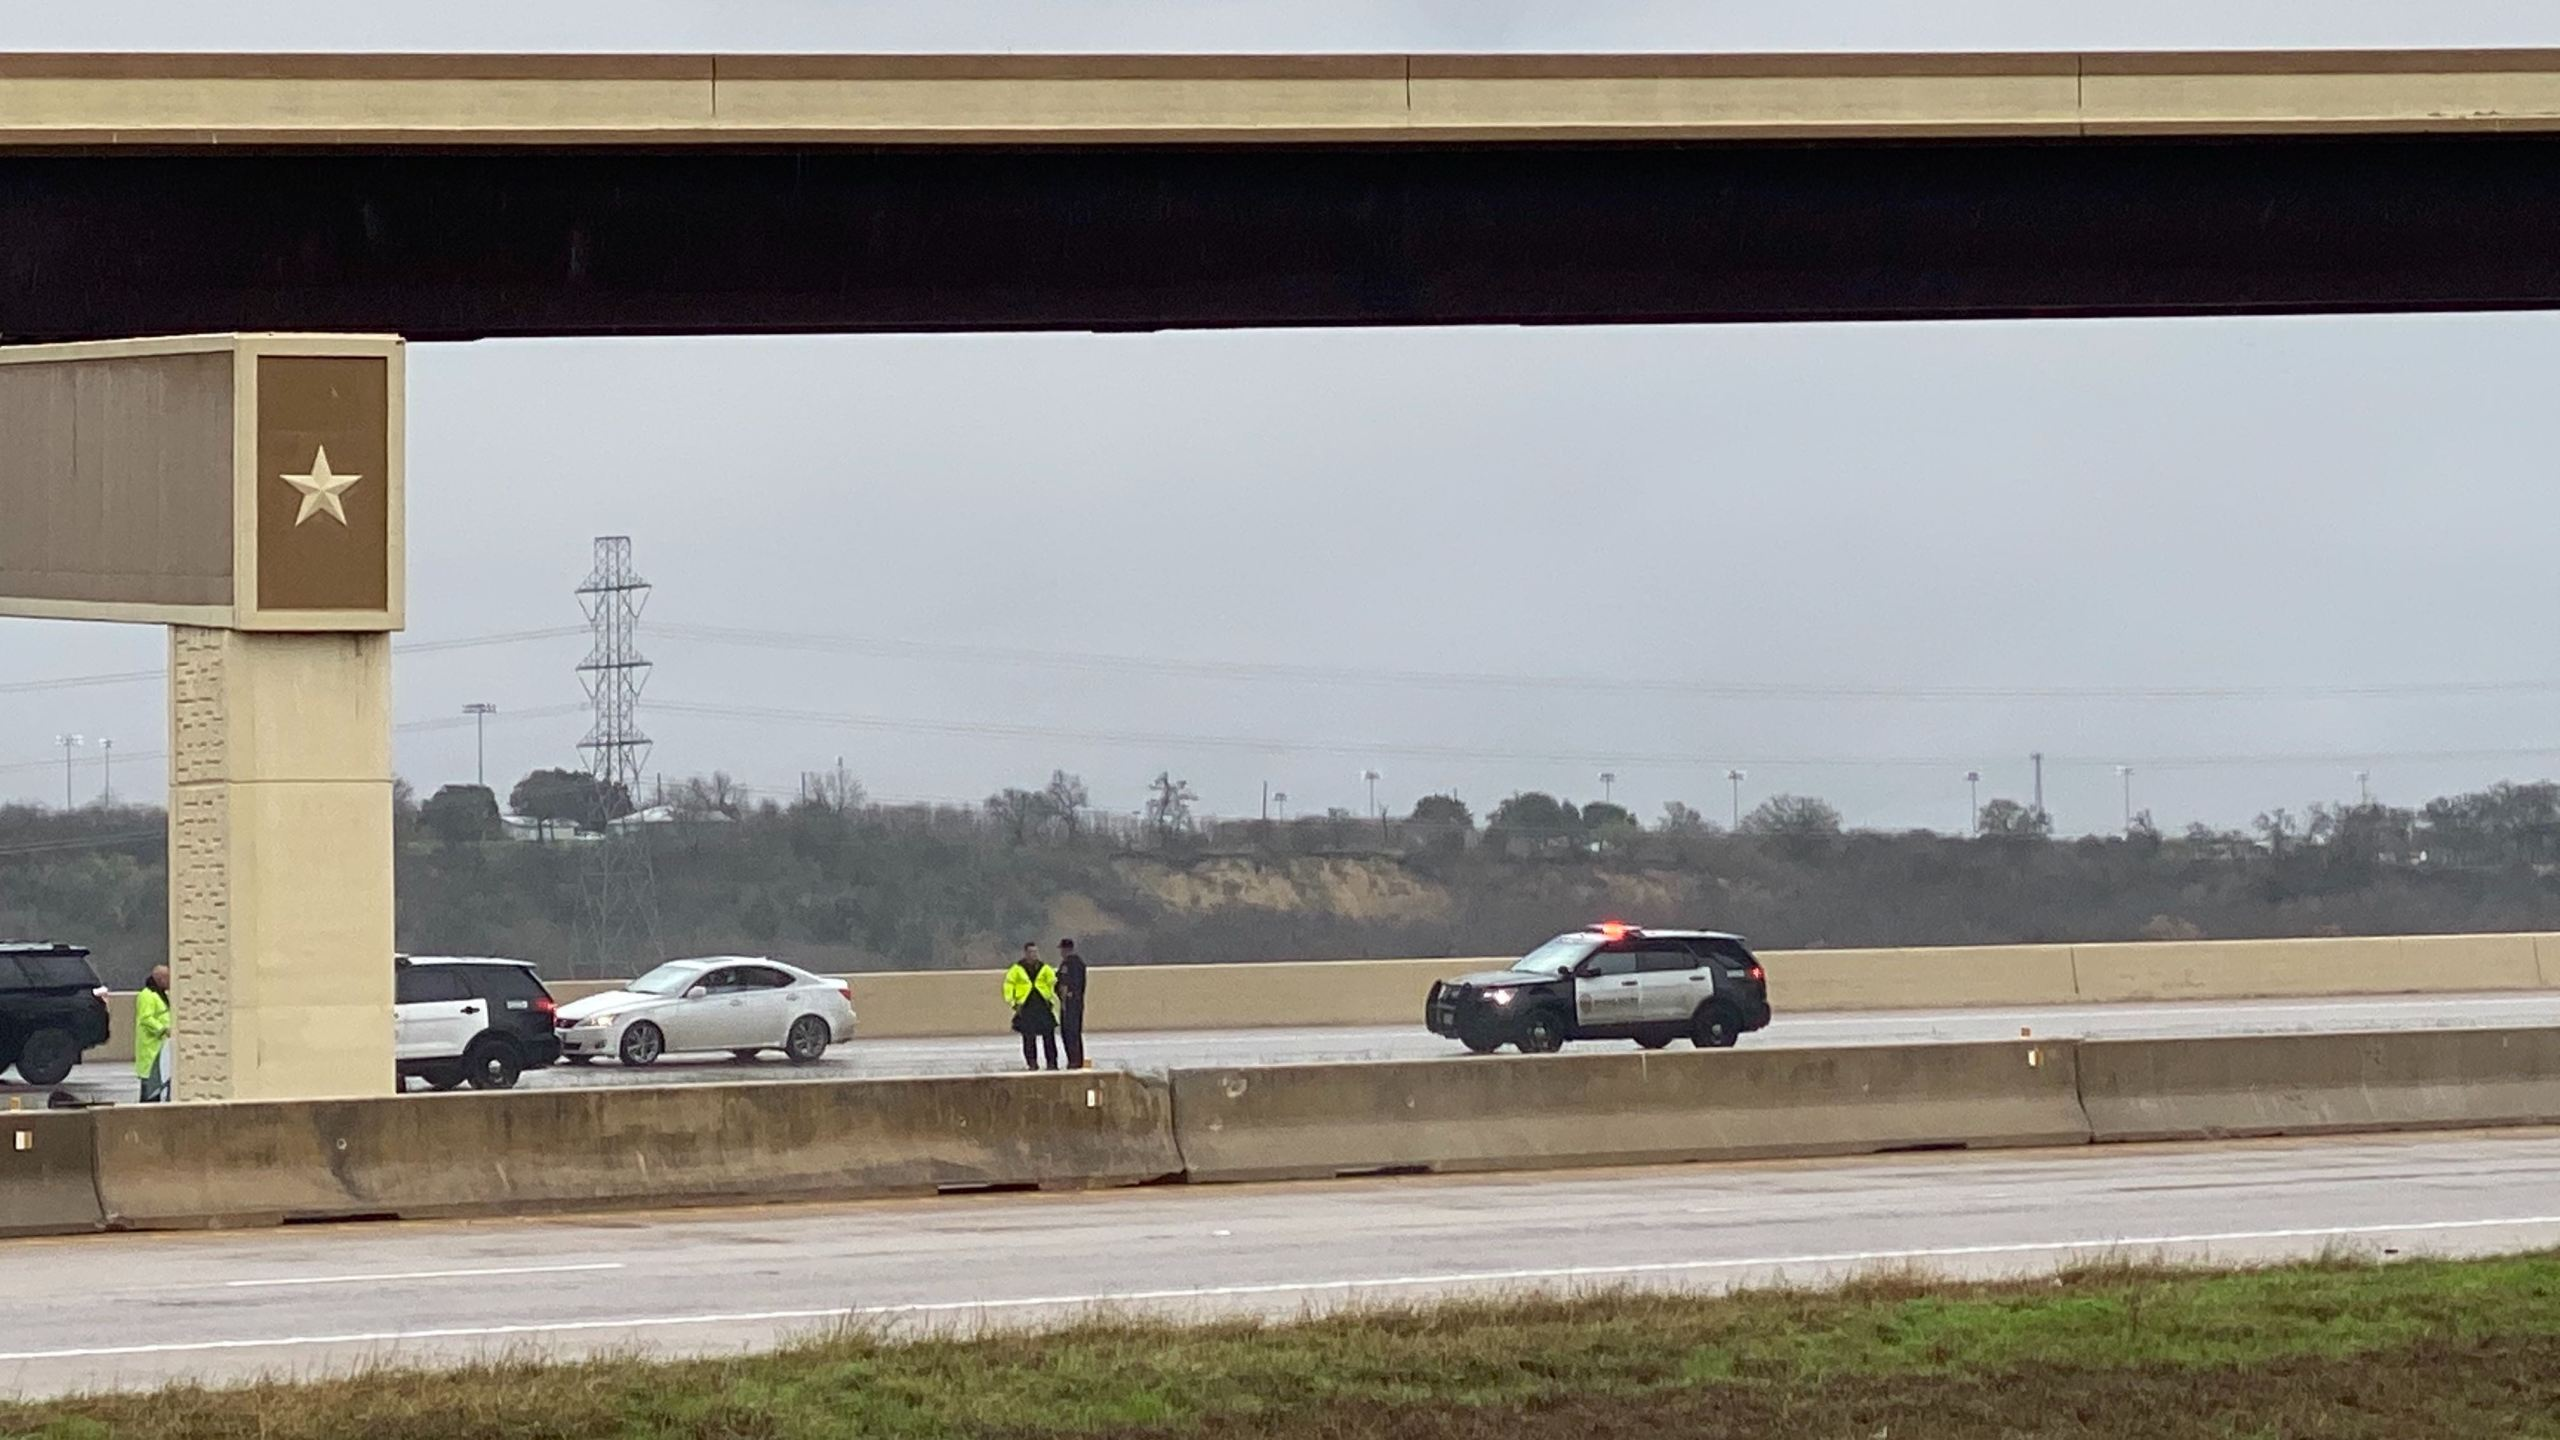 Deadly crash on SH 130 entrance ramp in southeast Austin